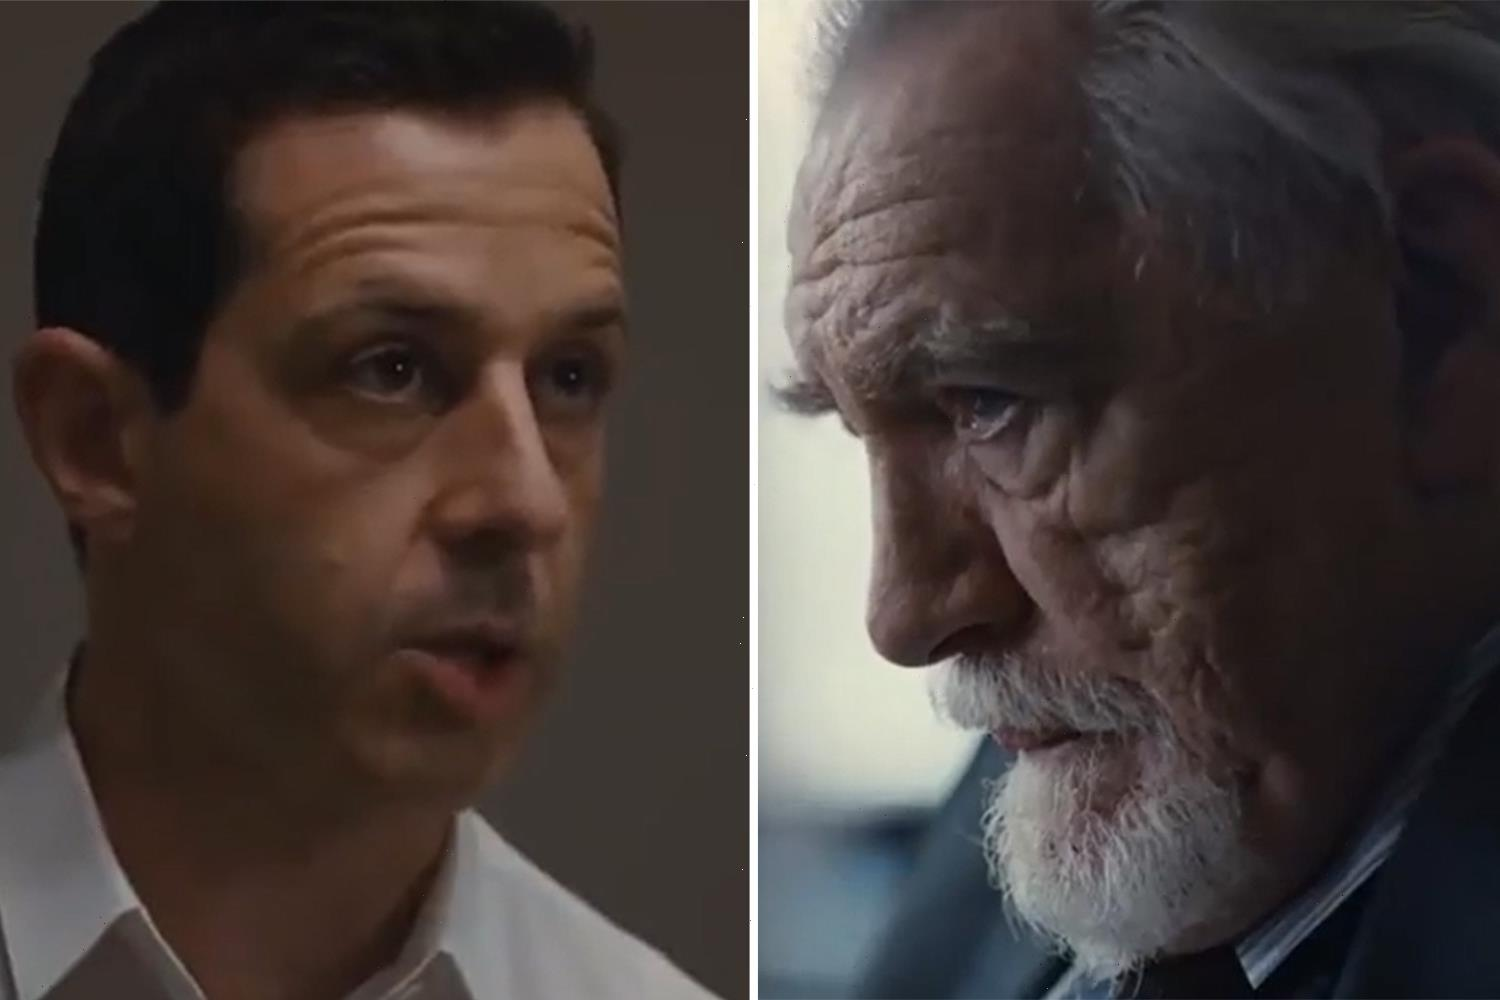 Succession fans convinced they've already solved season 3 twist after explosive new trailer